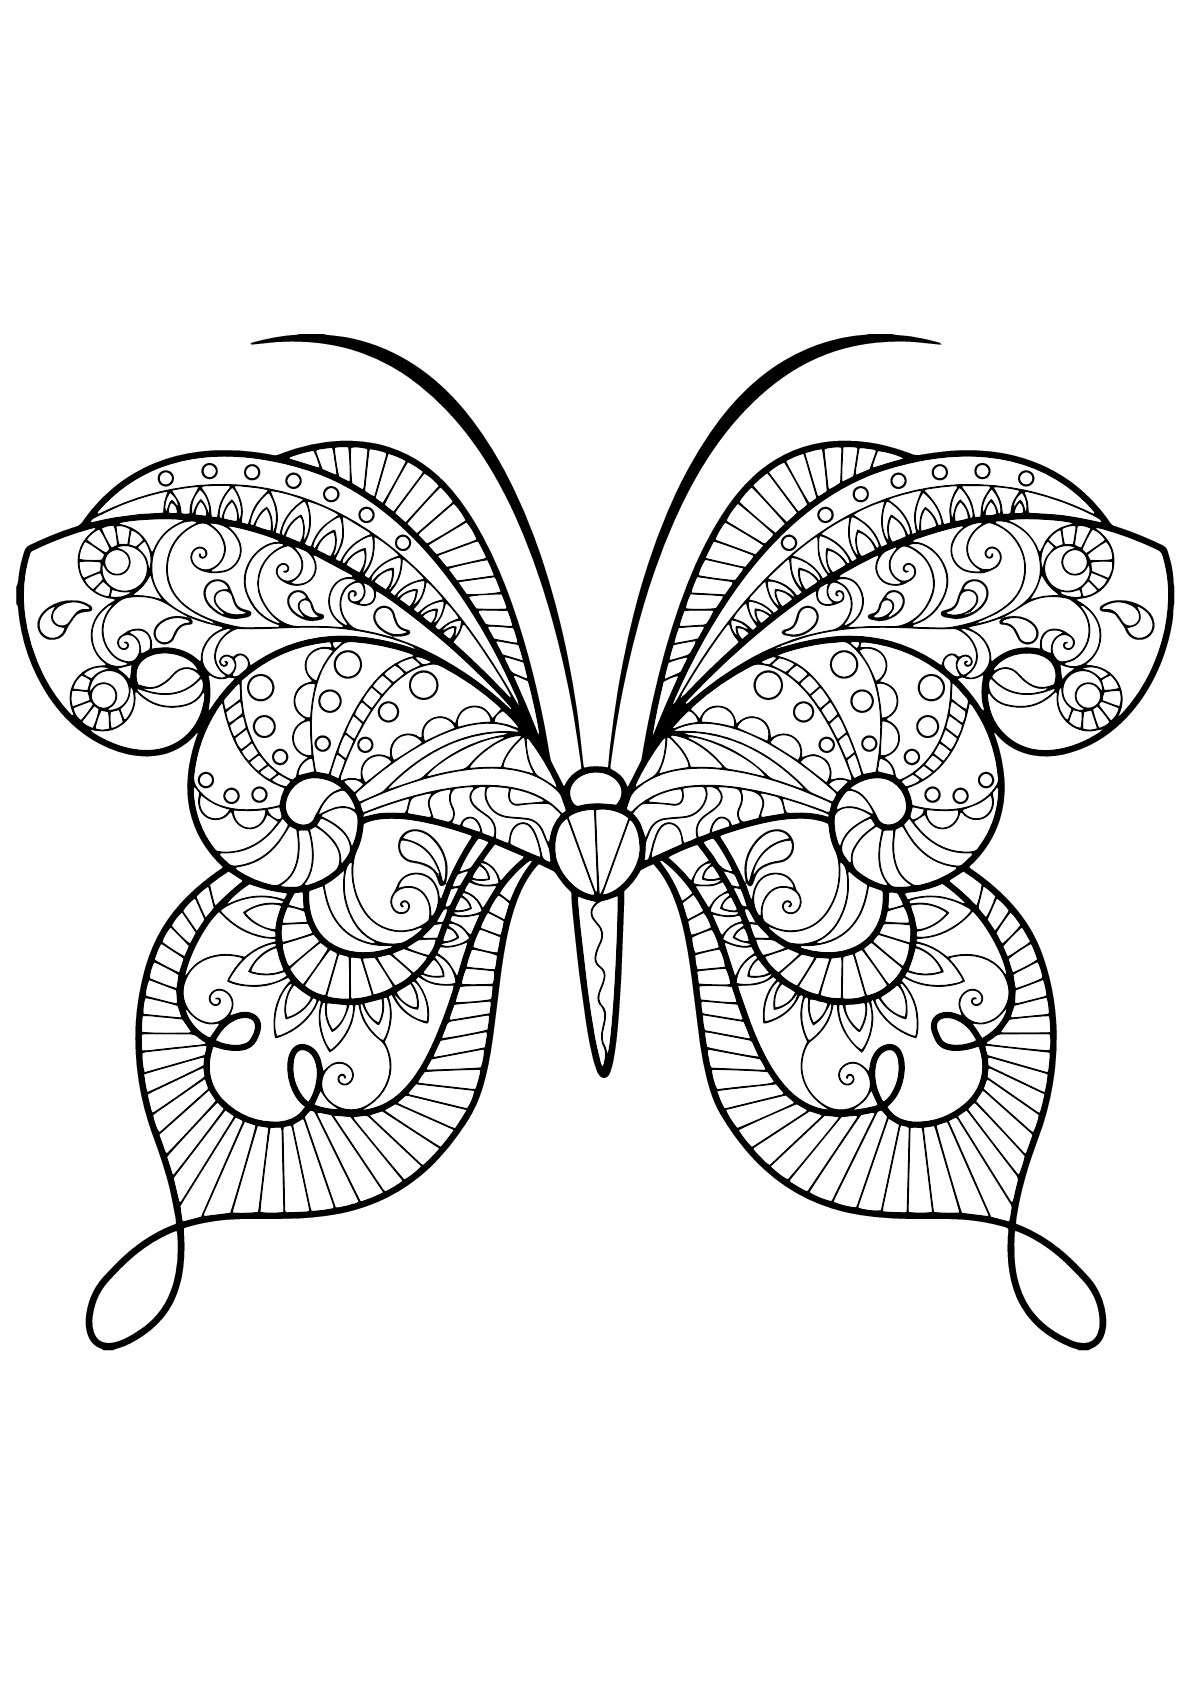 Butterflies To Download For Free